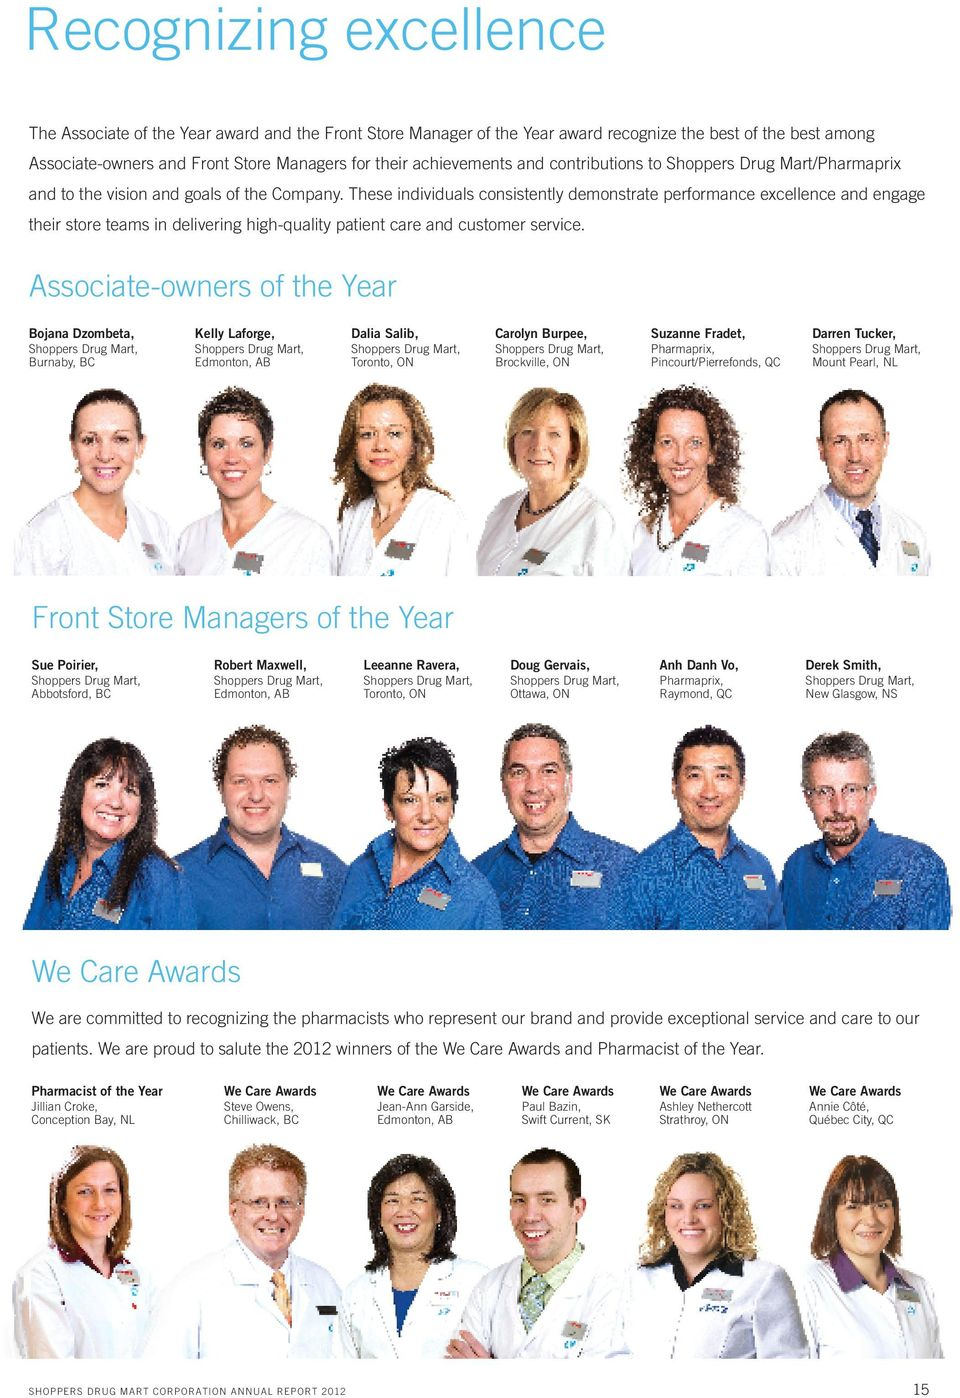 These individuals consistently demonstrate performance excellence and engage their store teams in delivering high-quality patient care and customer service.